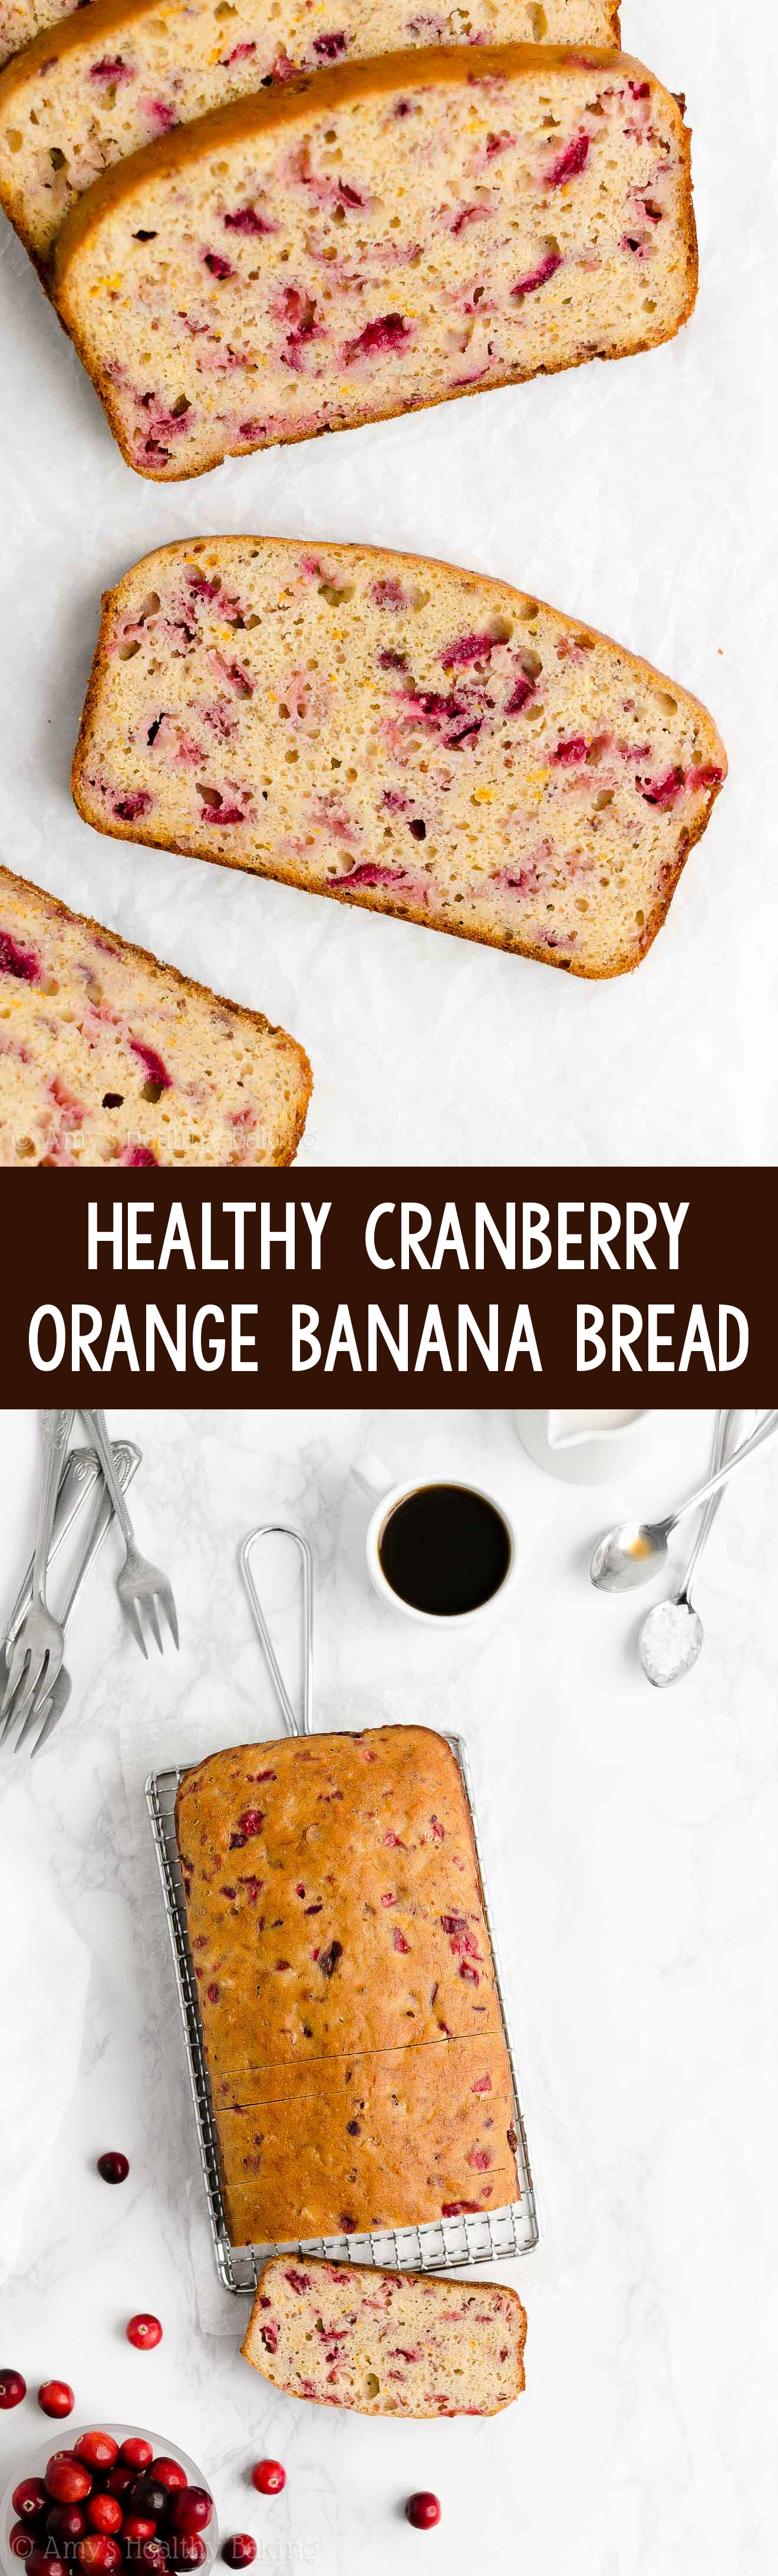 Easy Healthy Clean Eating No Sugar Moist Fresh Cranberry Orange Banana Bread